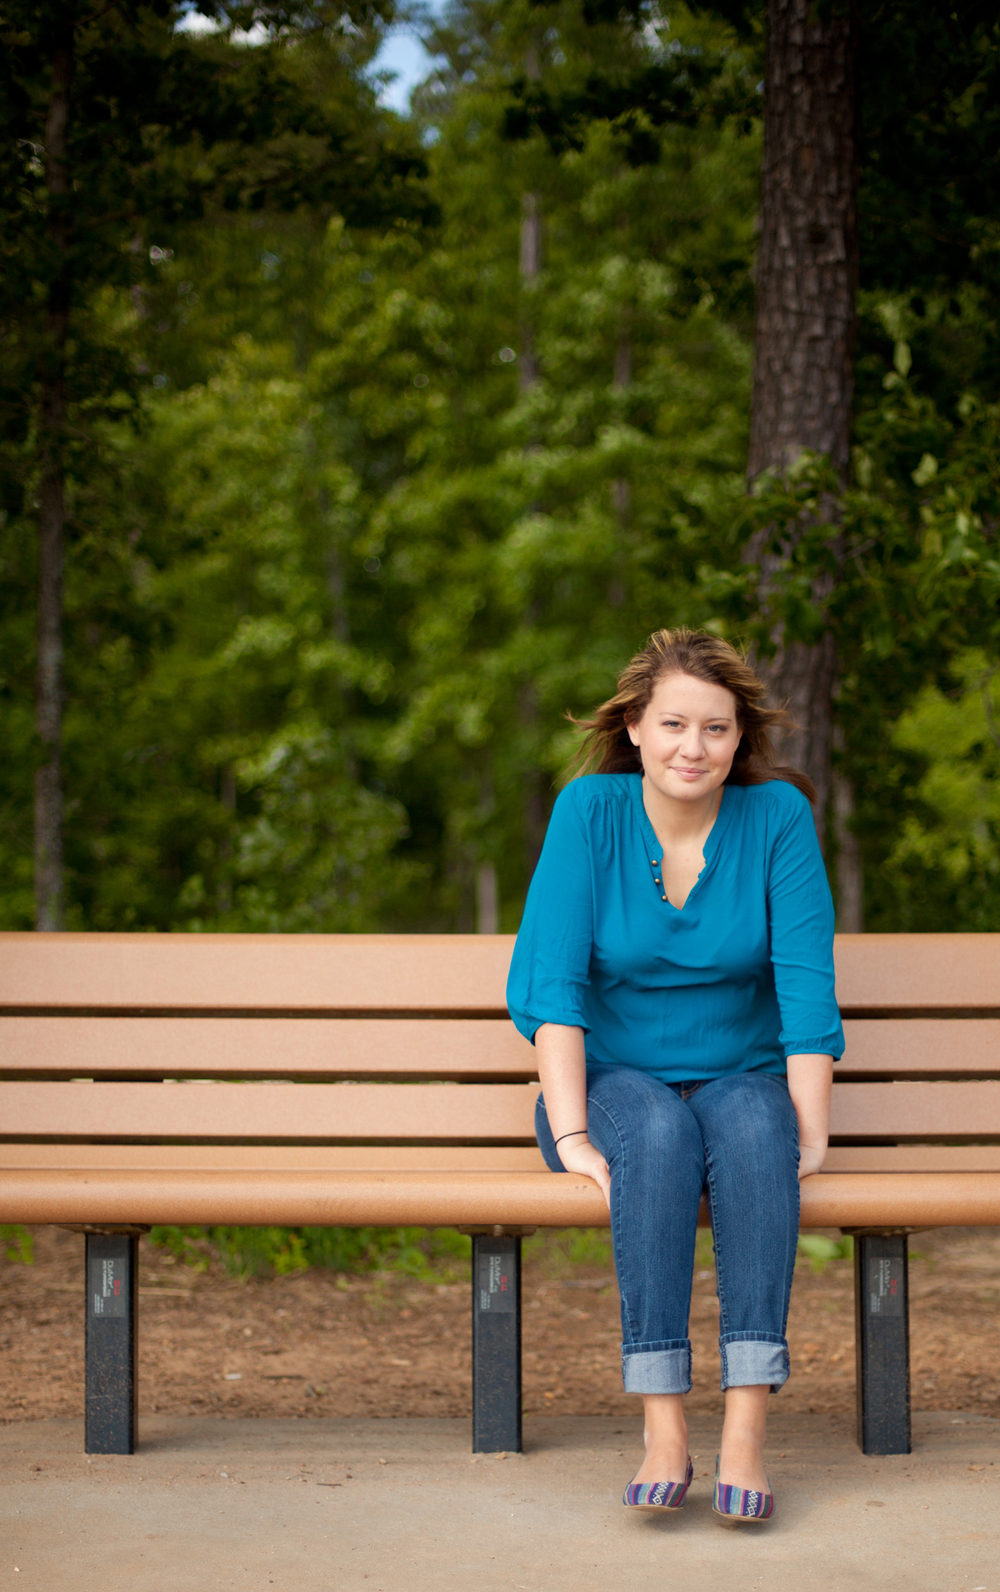 A Girl Sitting on a Bench at Bond Park